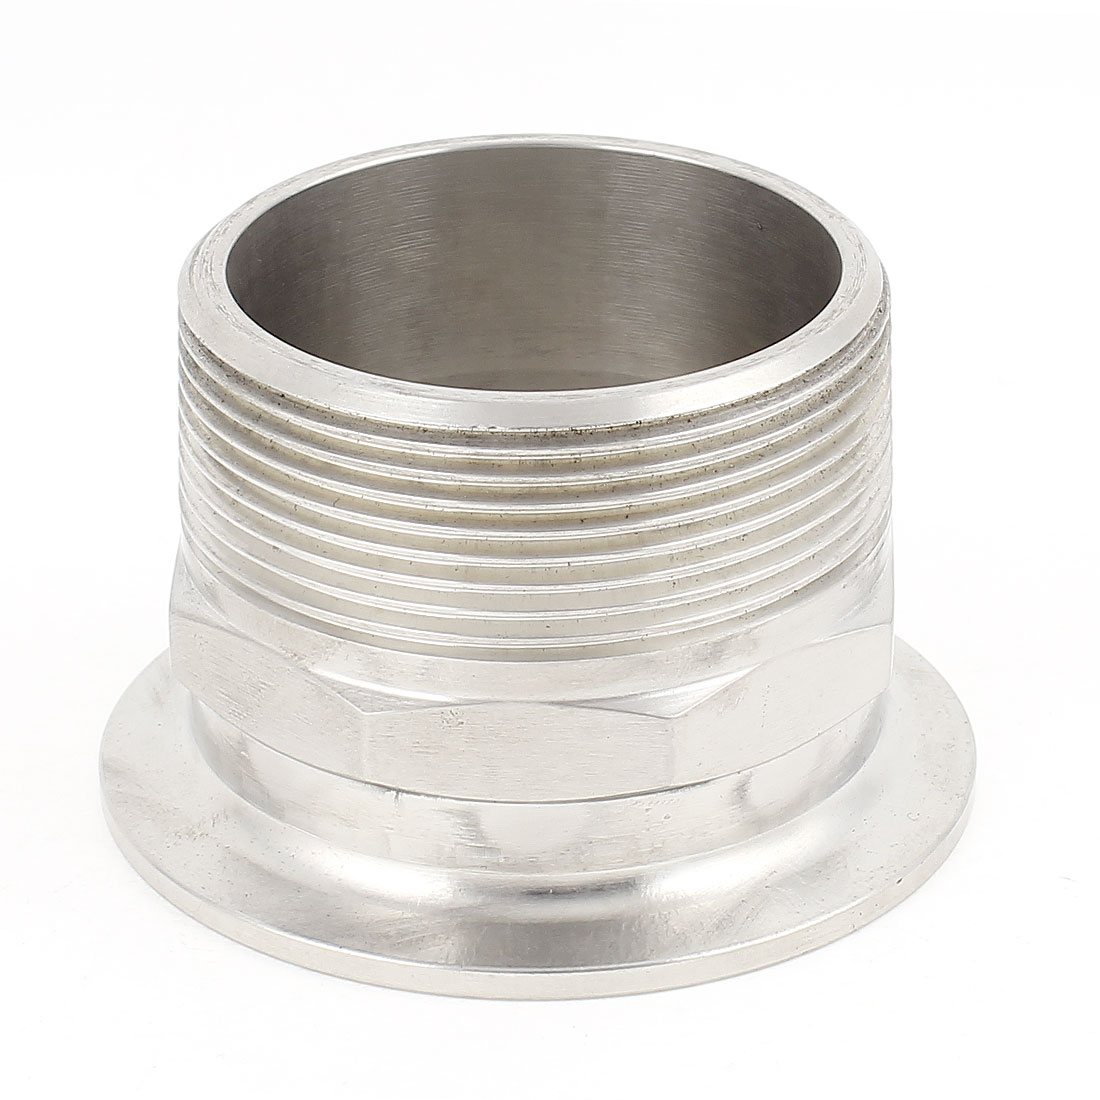 Stainless Steel 304 KF-50 Flange to 2BSP Male Thread Adapter Fitting